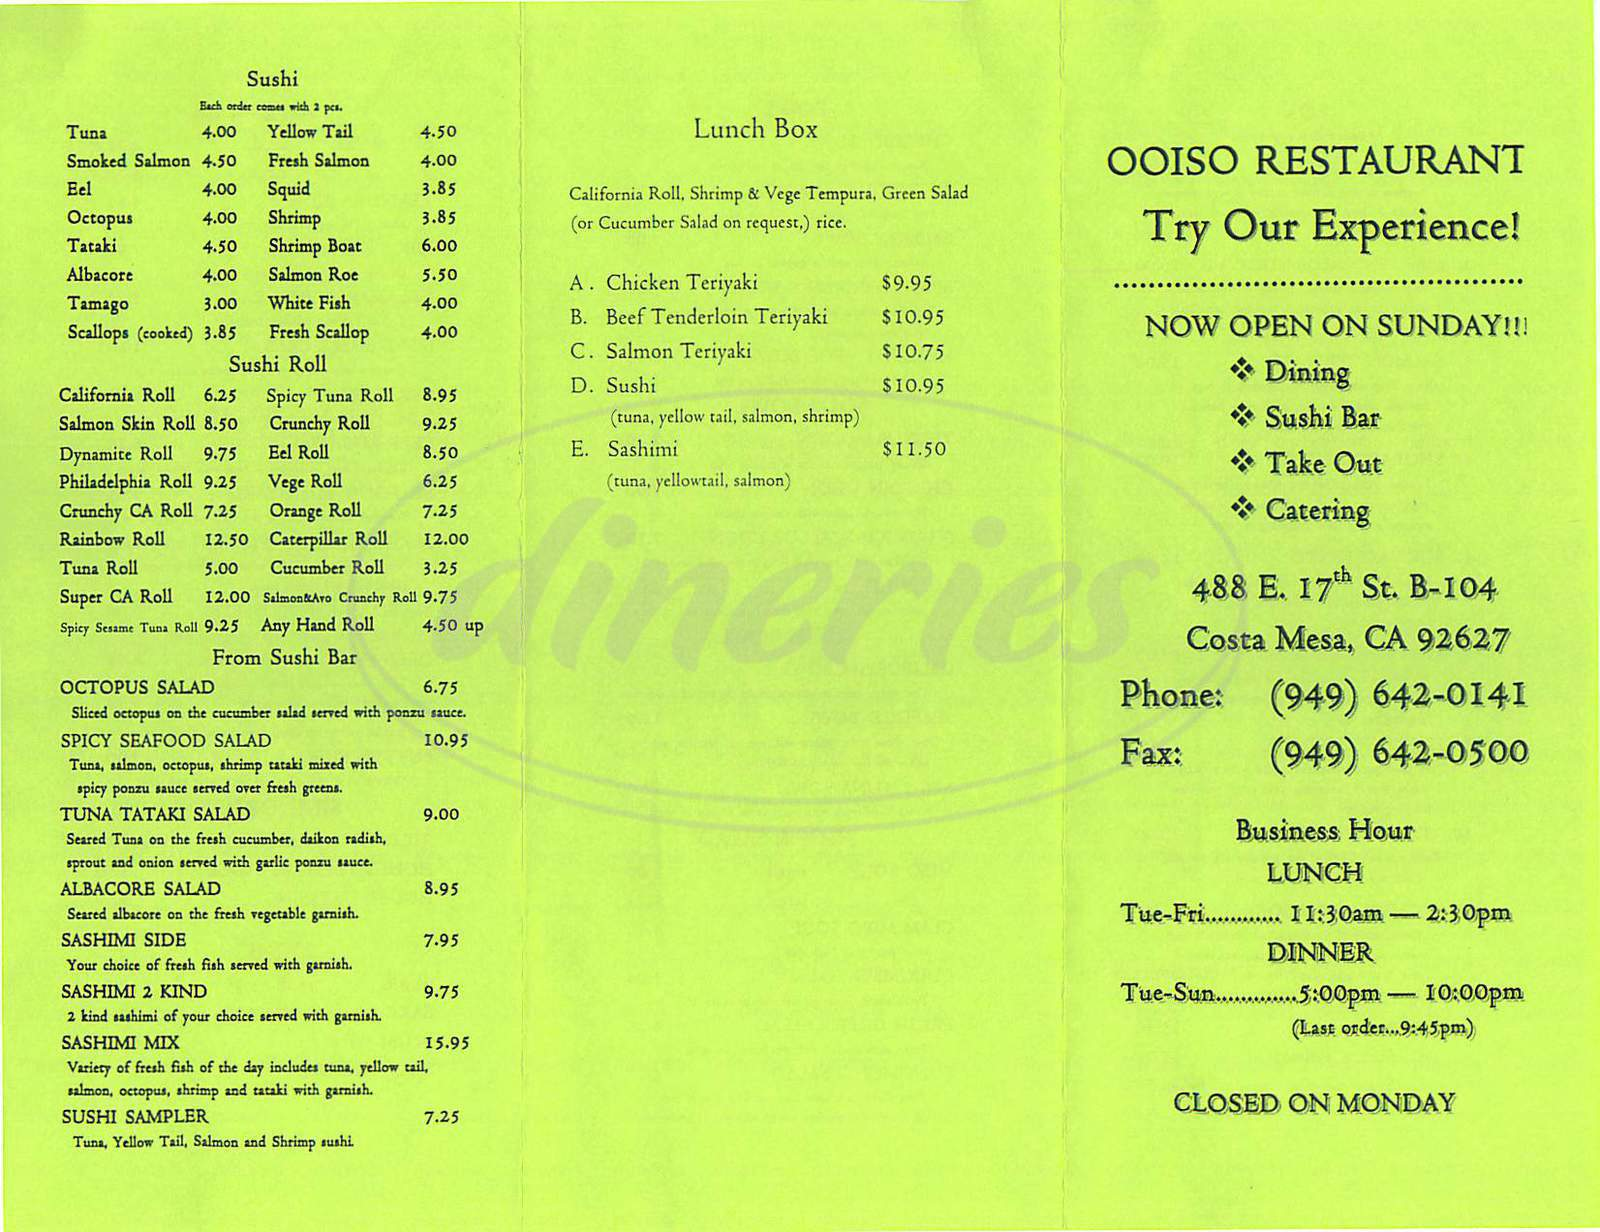 menu for Ooiso Restaurant